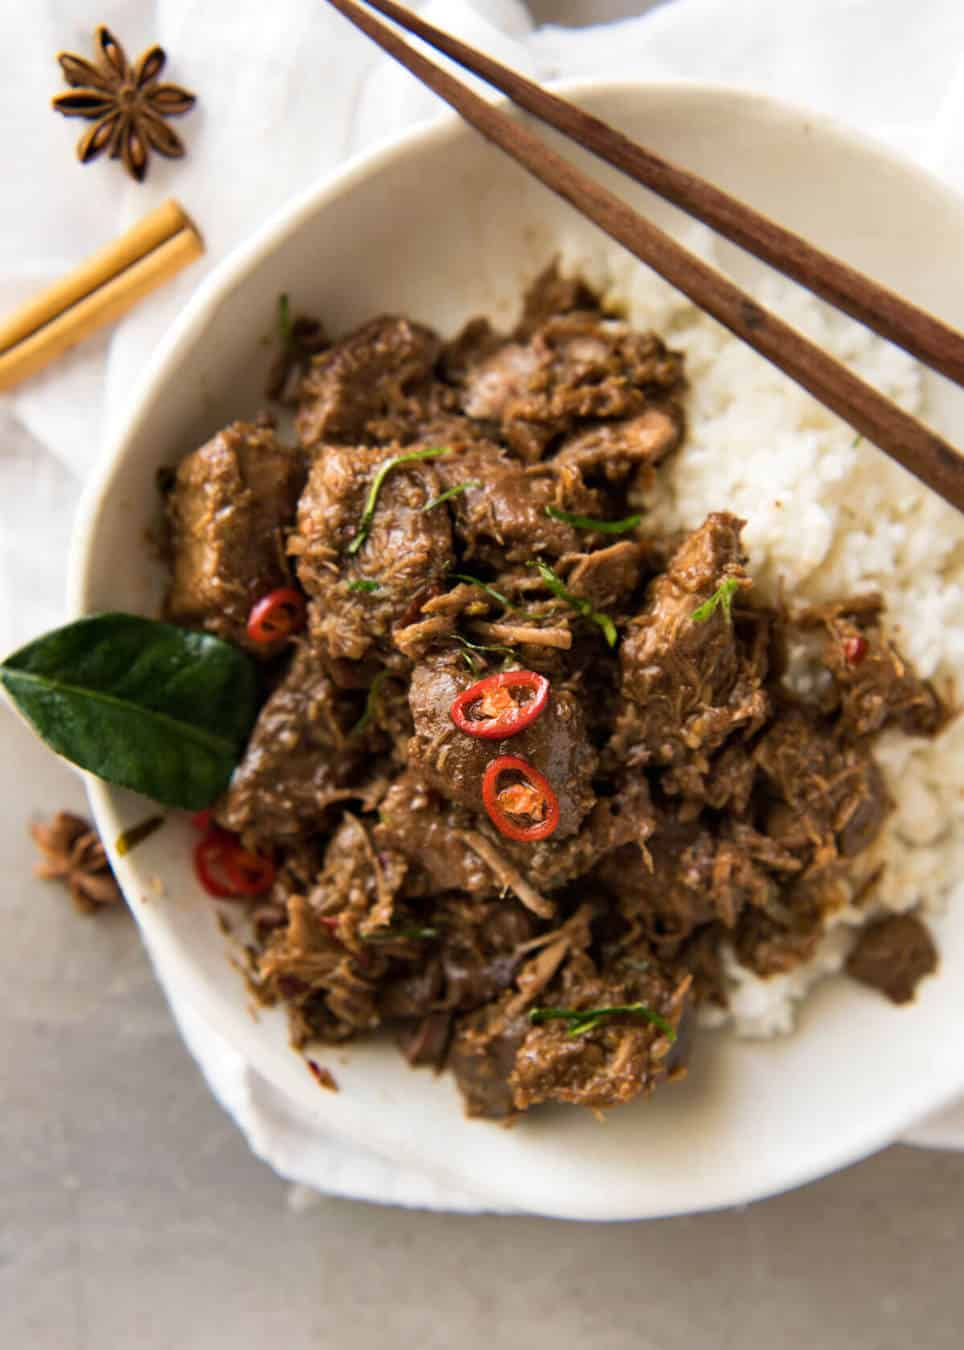 The King of all Curries, Beef Rendang is straight forward to make and has incredible deep, complex flavours. Quick recipe video provided! www.recipetineats.com